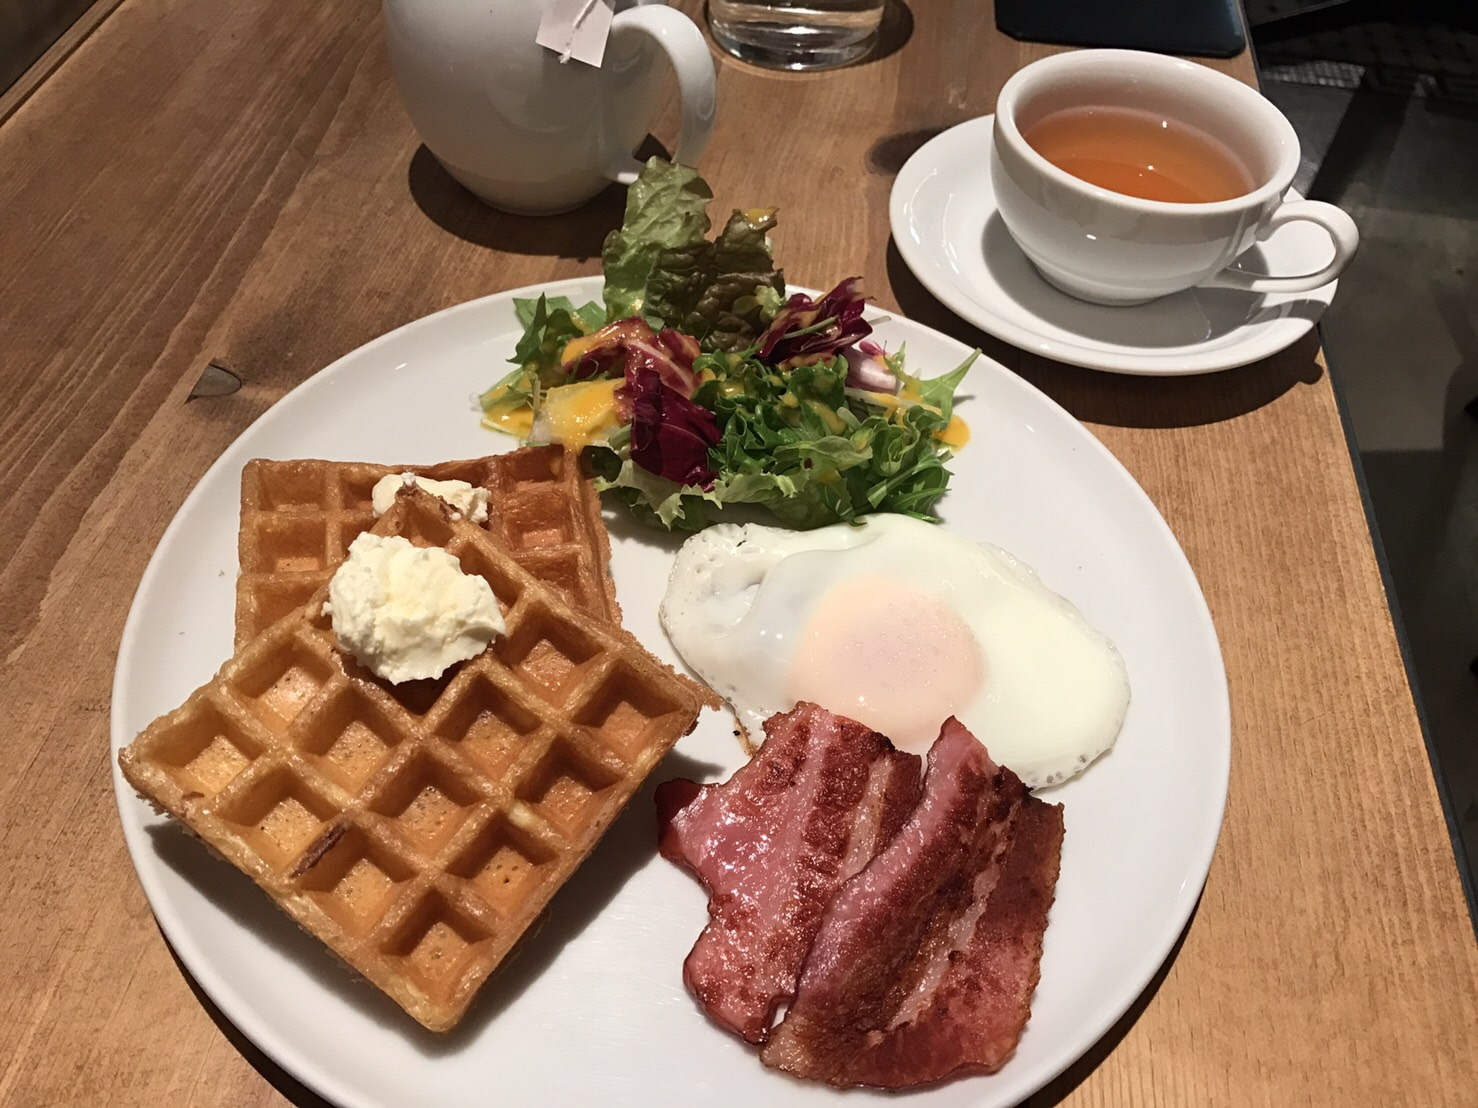 Waffles, an egg, salad and bacon for breakfast